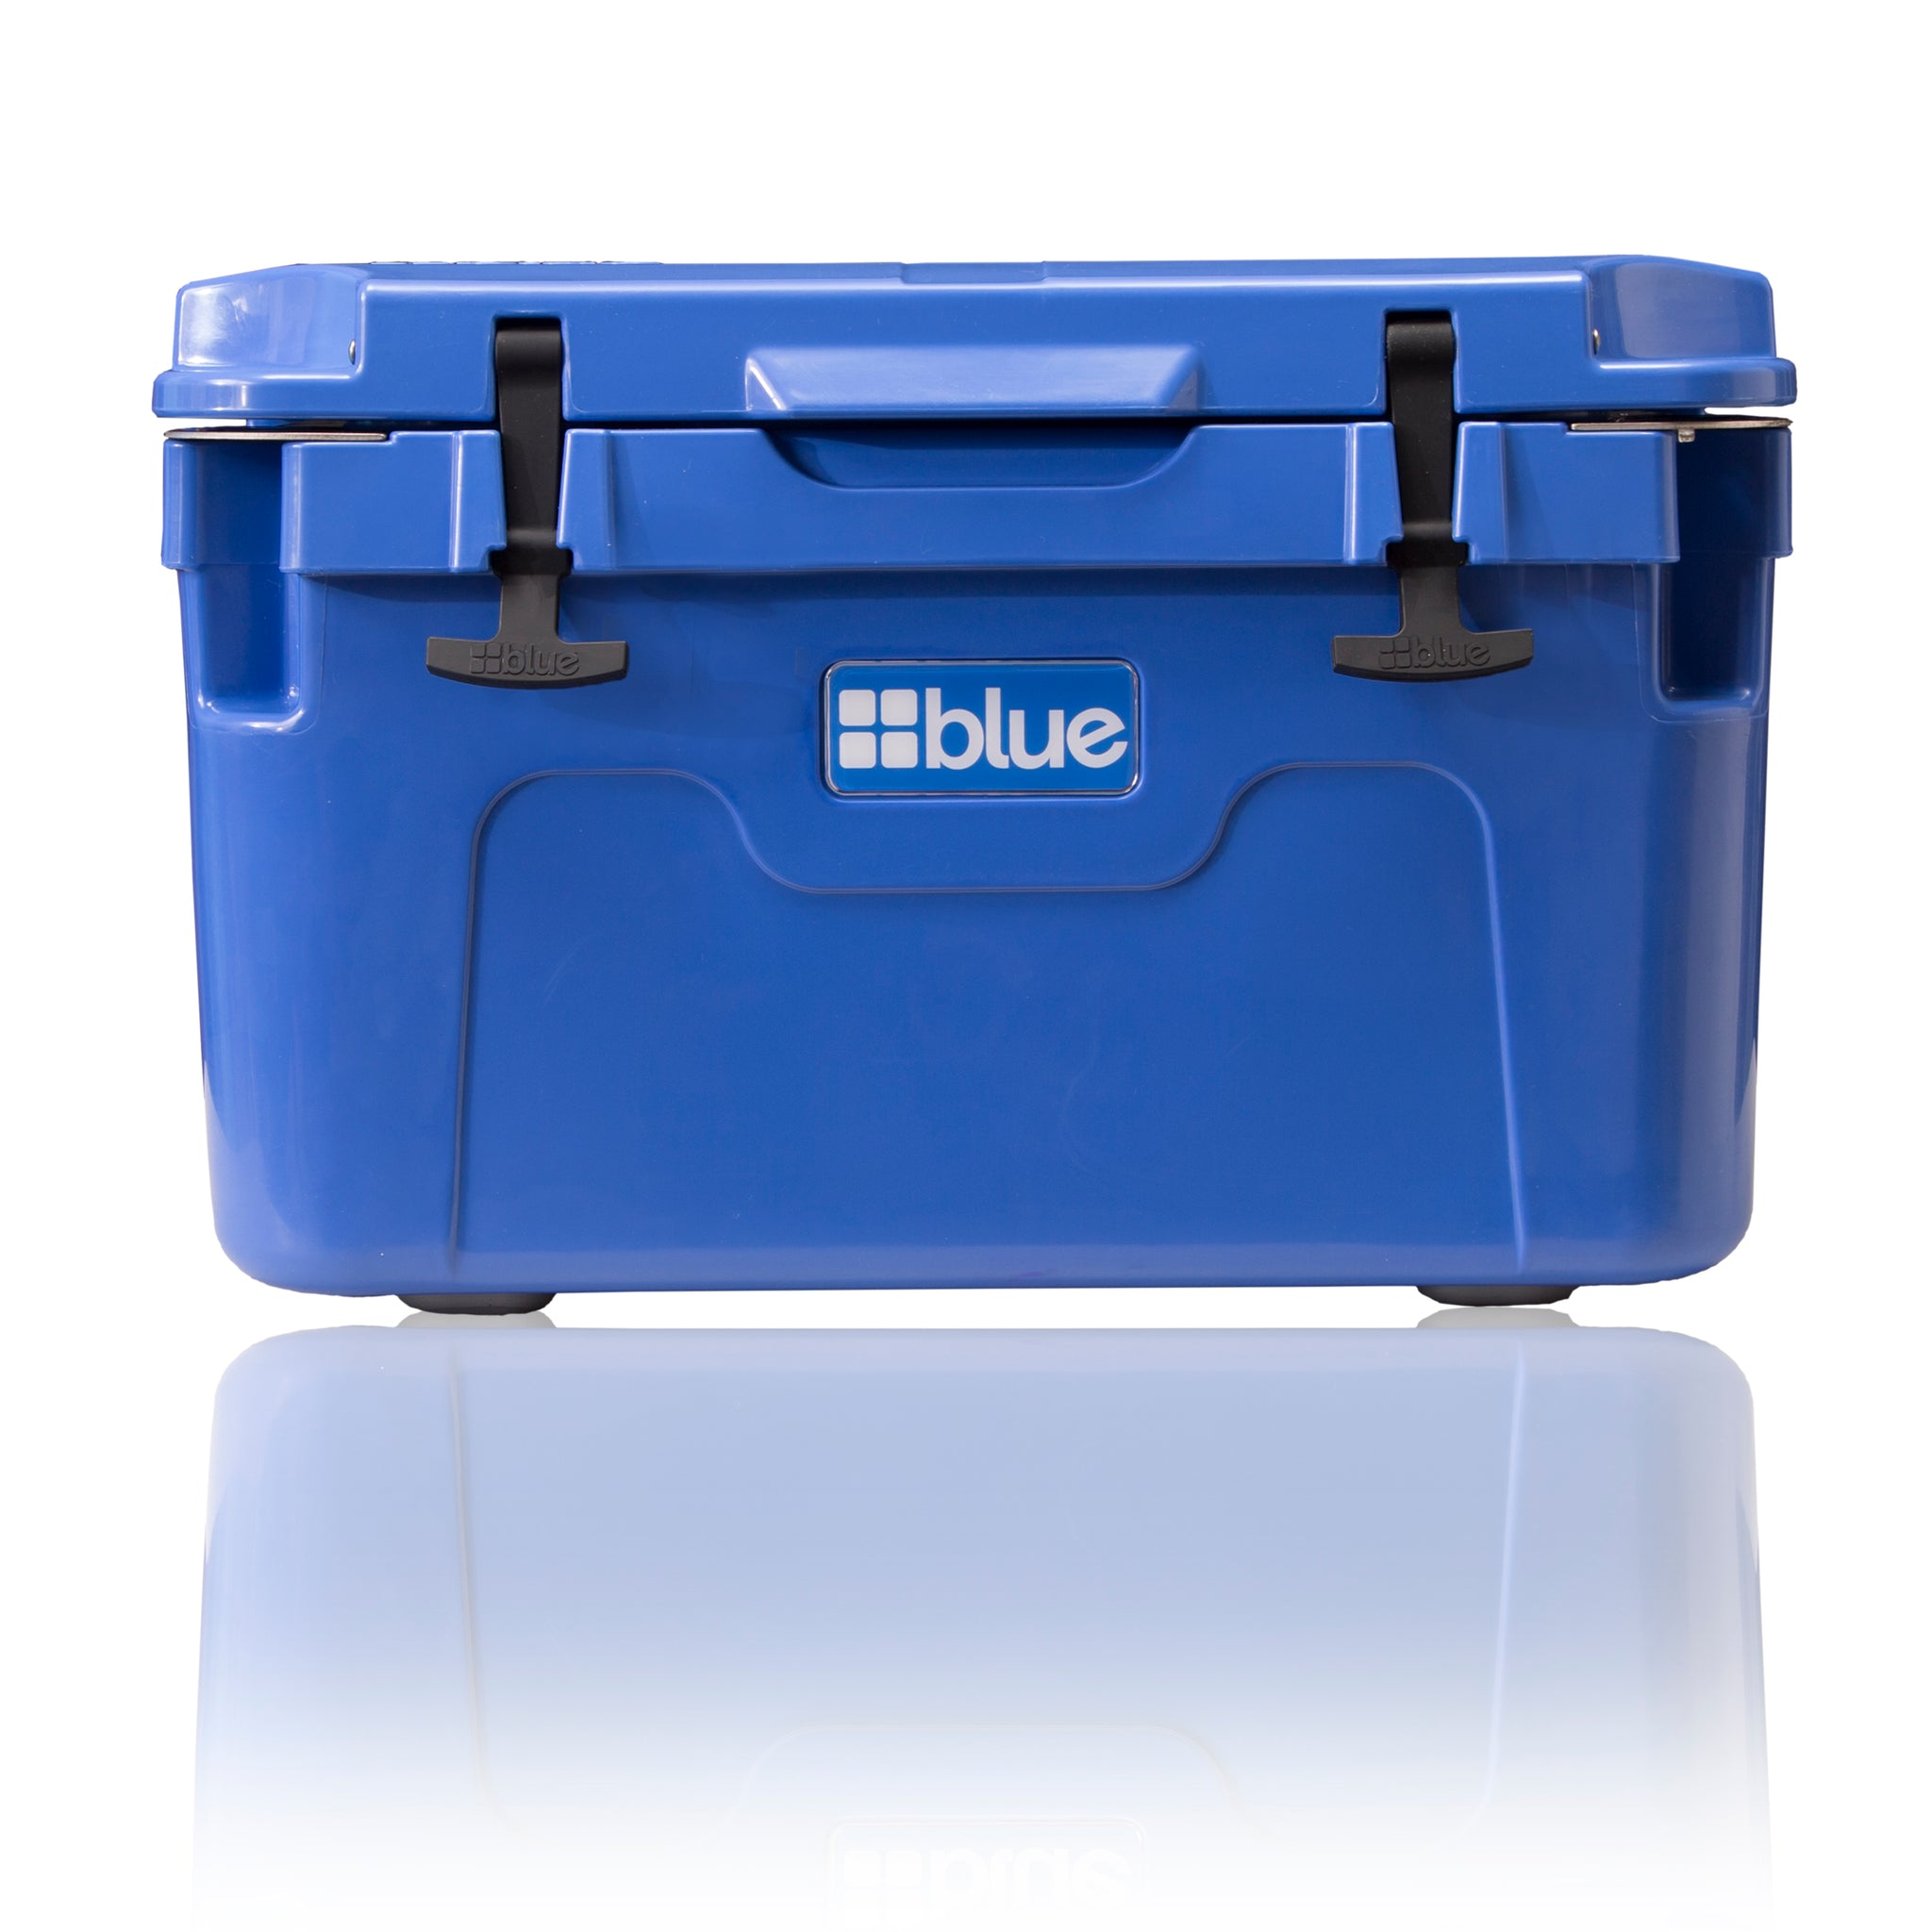 NTPC Customized - 30 Quart Companion Cooler from Blue Coolers